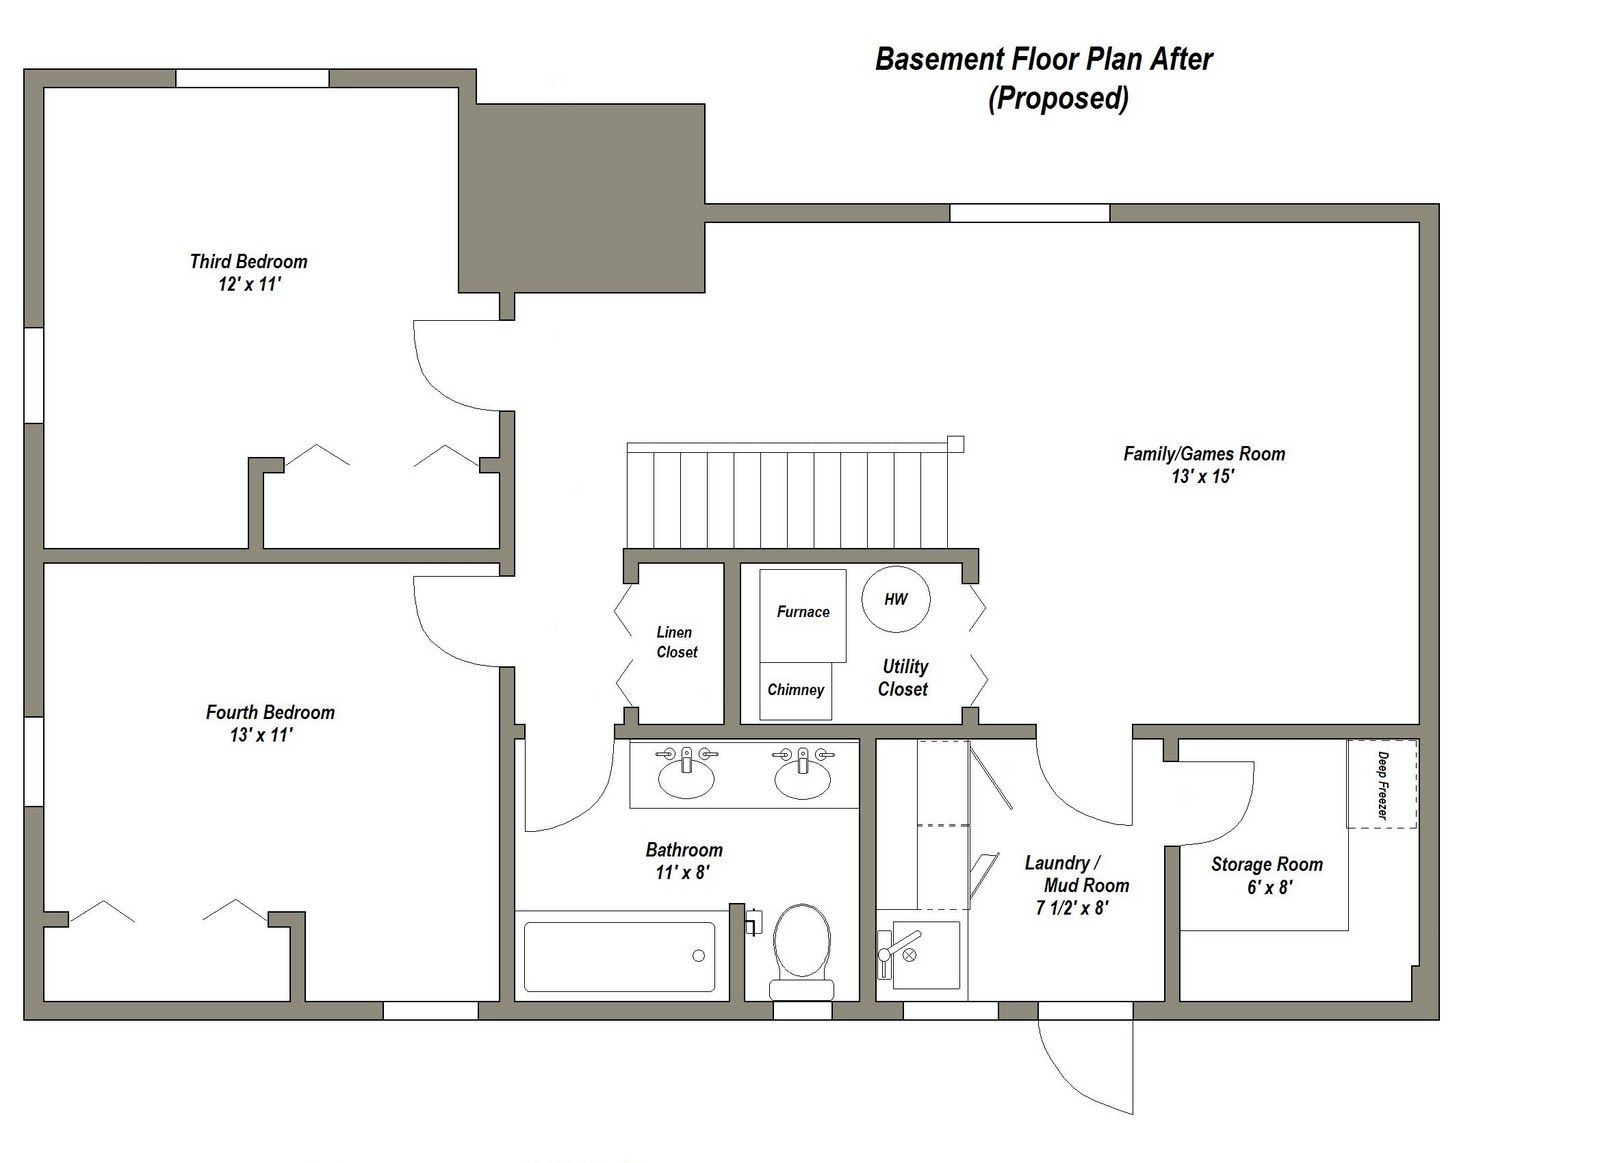 Pin by krystle rupert on basement pinterest basement for Design basement layout online free